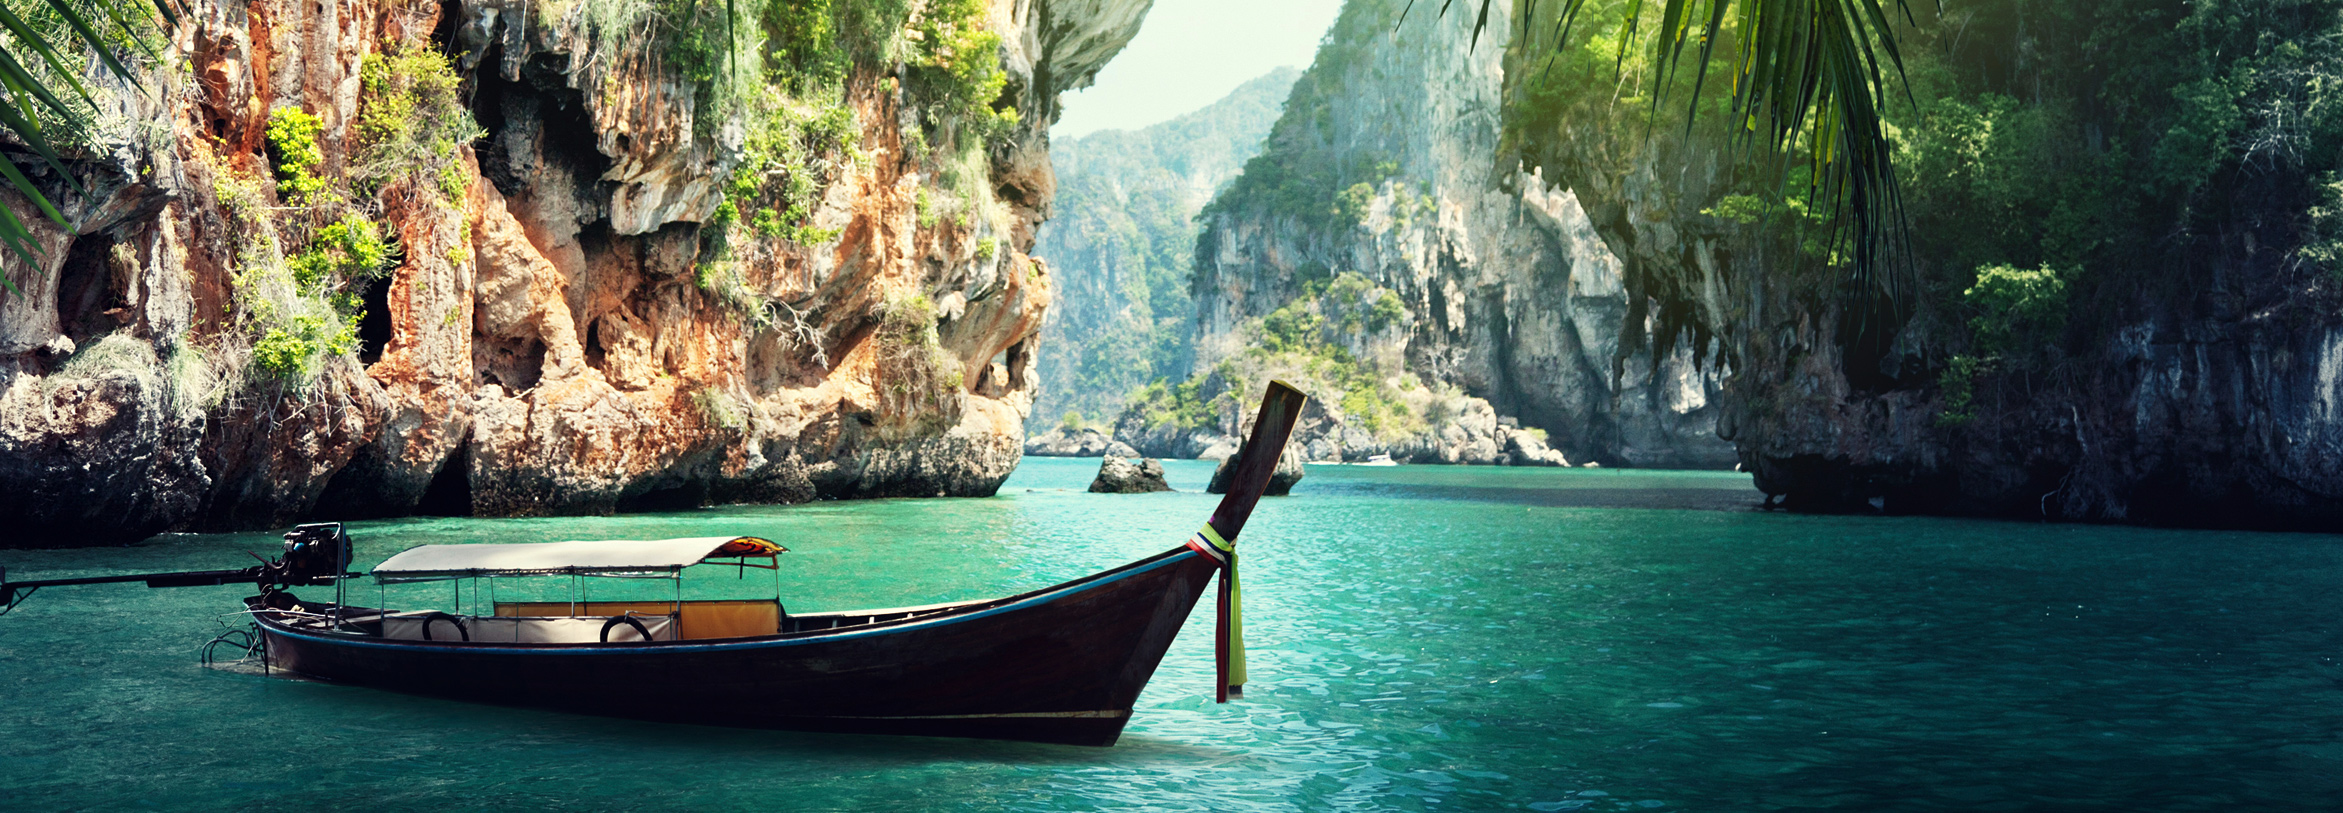 Thailand-Luxury-Travel-Thailand-Holiday-Ker-&-Downey